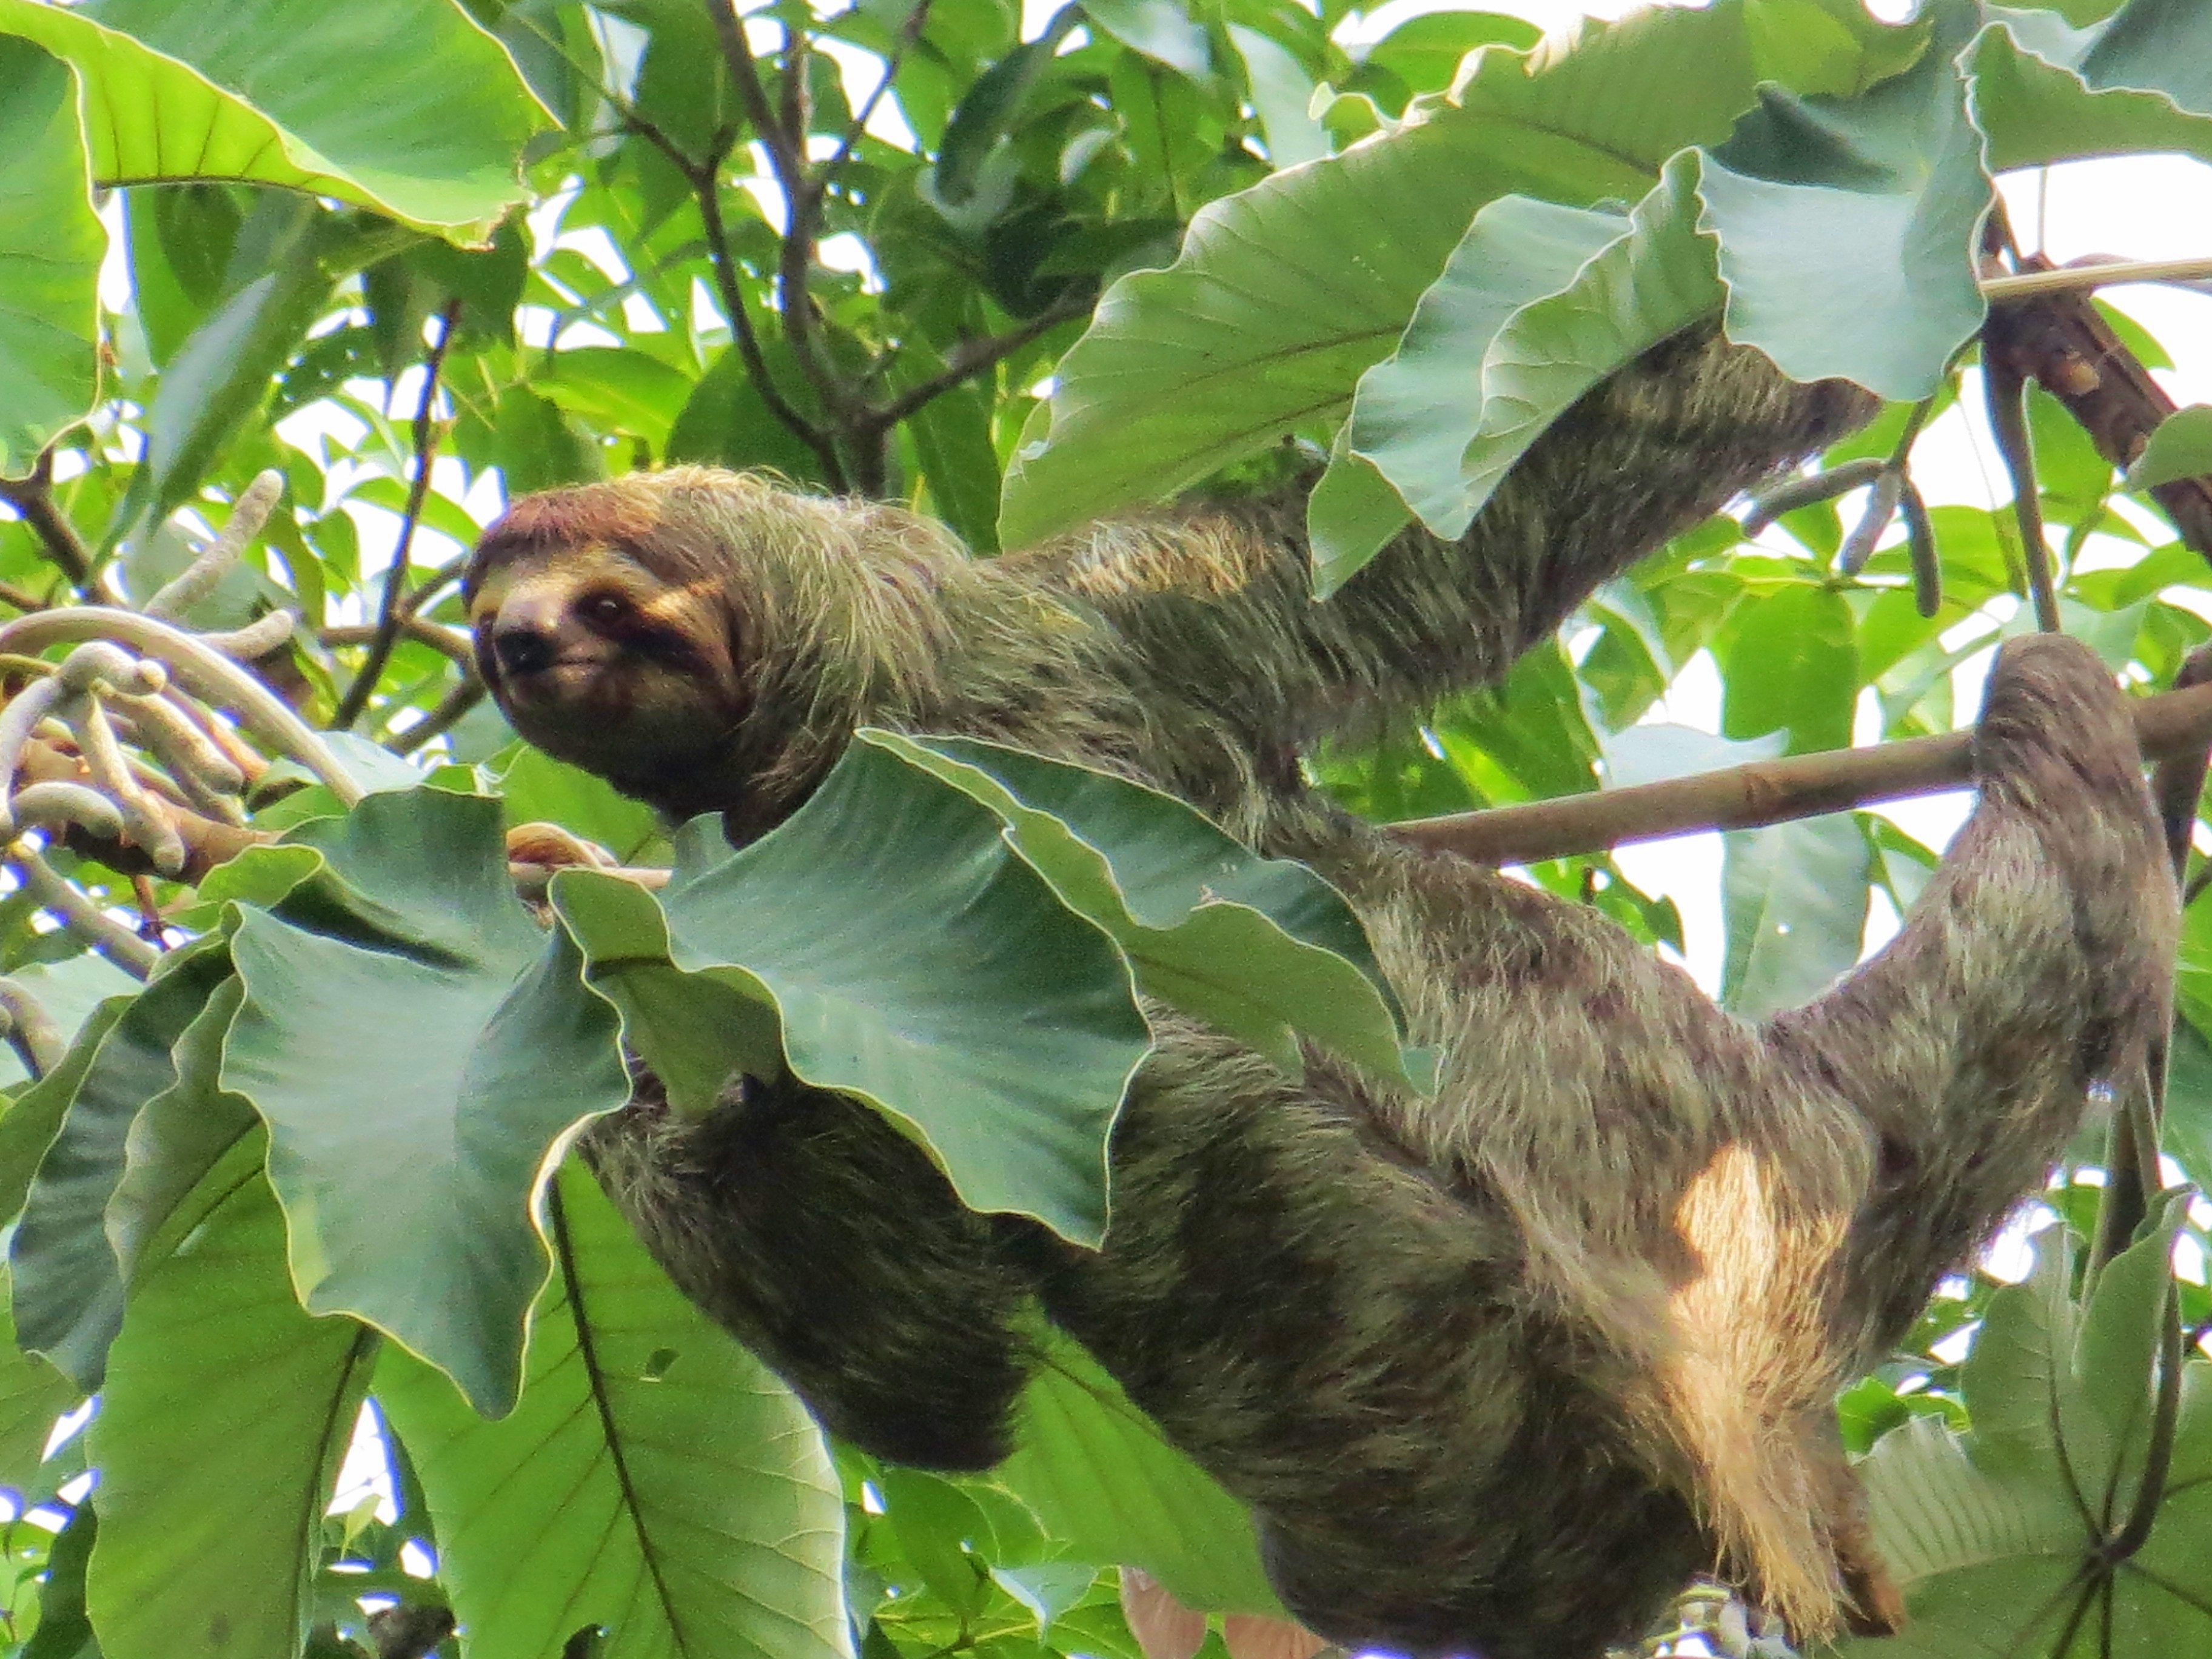 We ended up seeing not only one, but four sloths on our search. One of the workers saw us and helped point them out, even indicating that one of them was ...